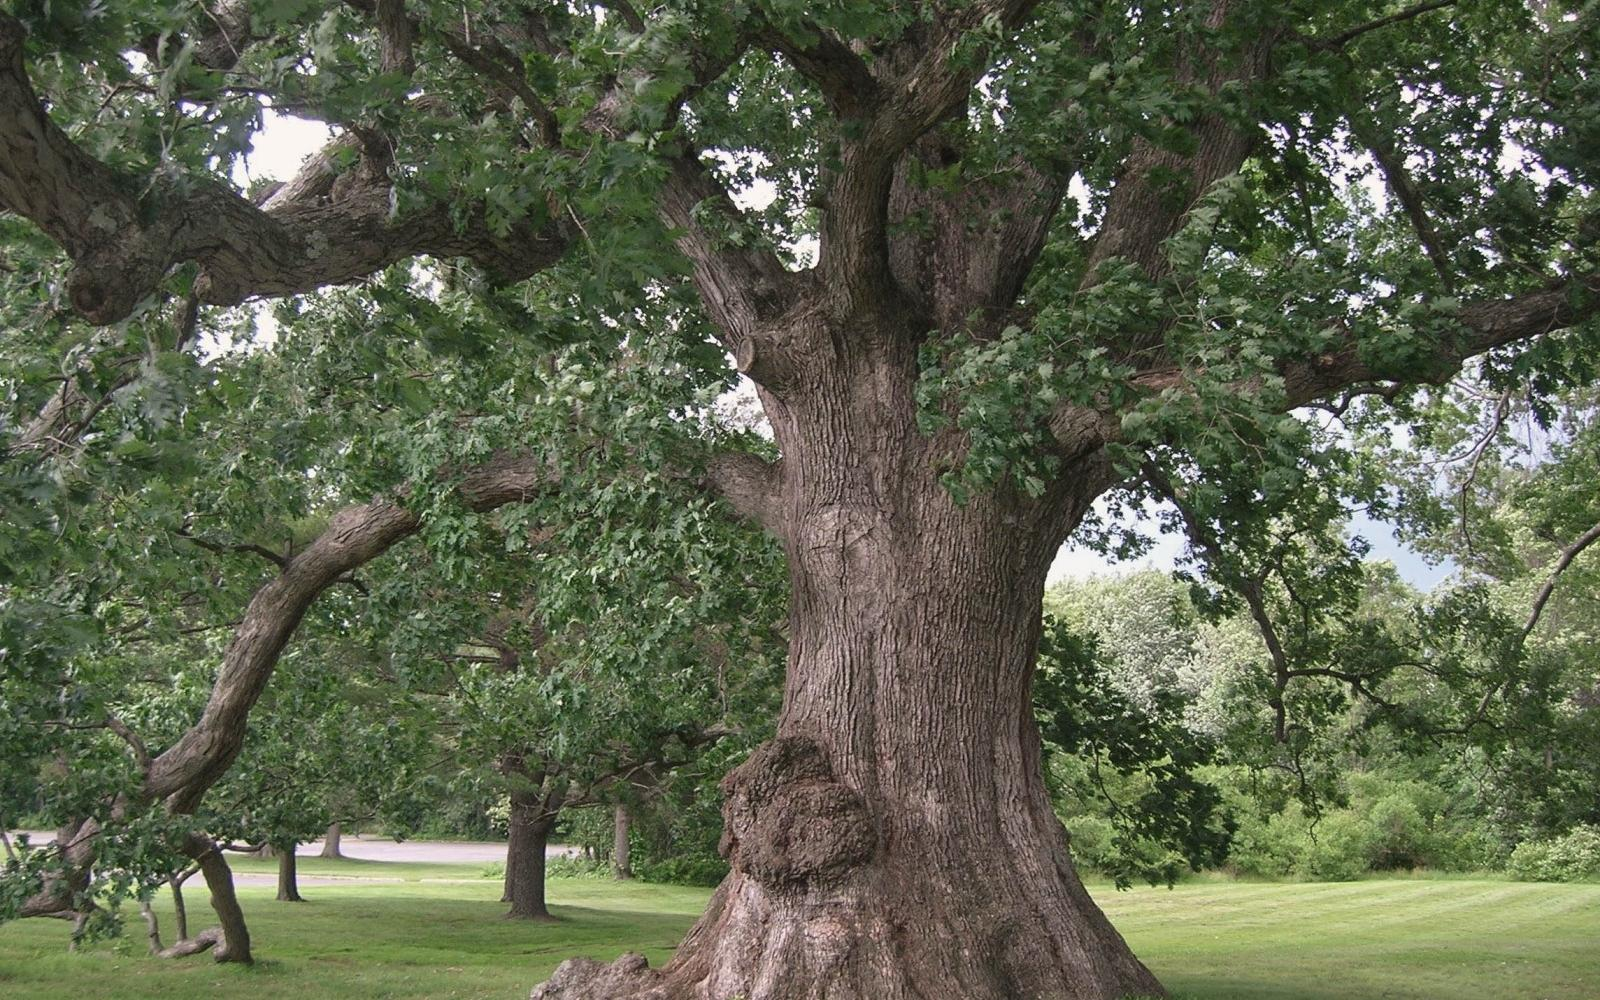 White Oak Tree - Photo: Wikimedia Commons / Msact